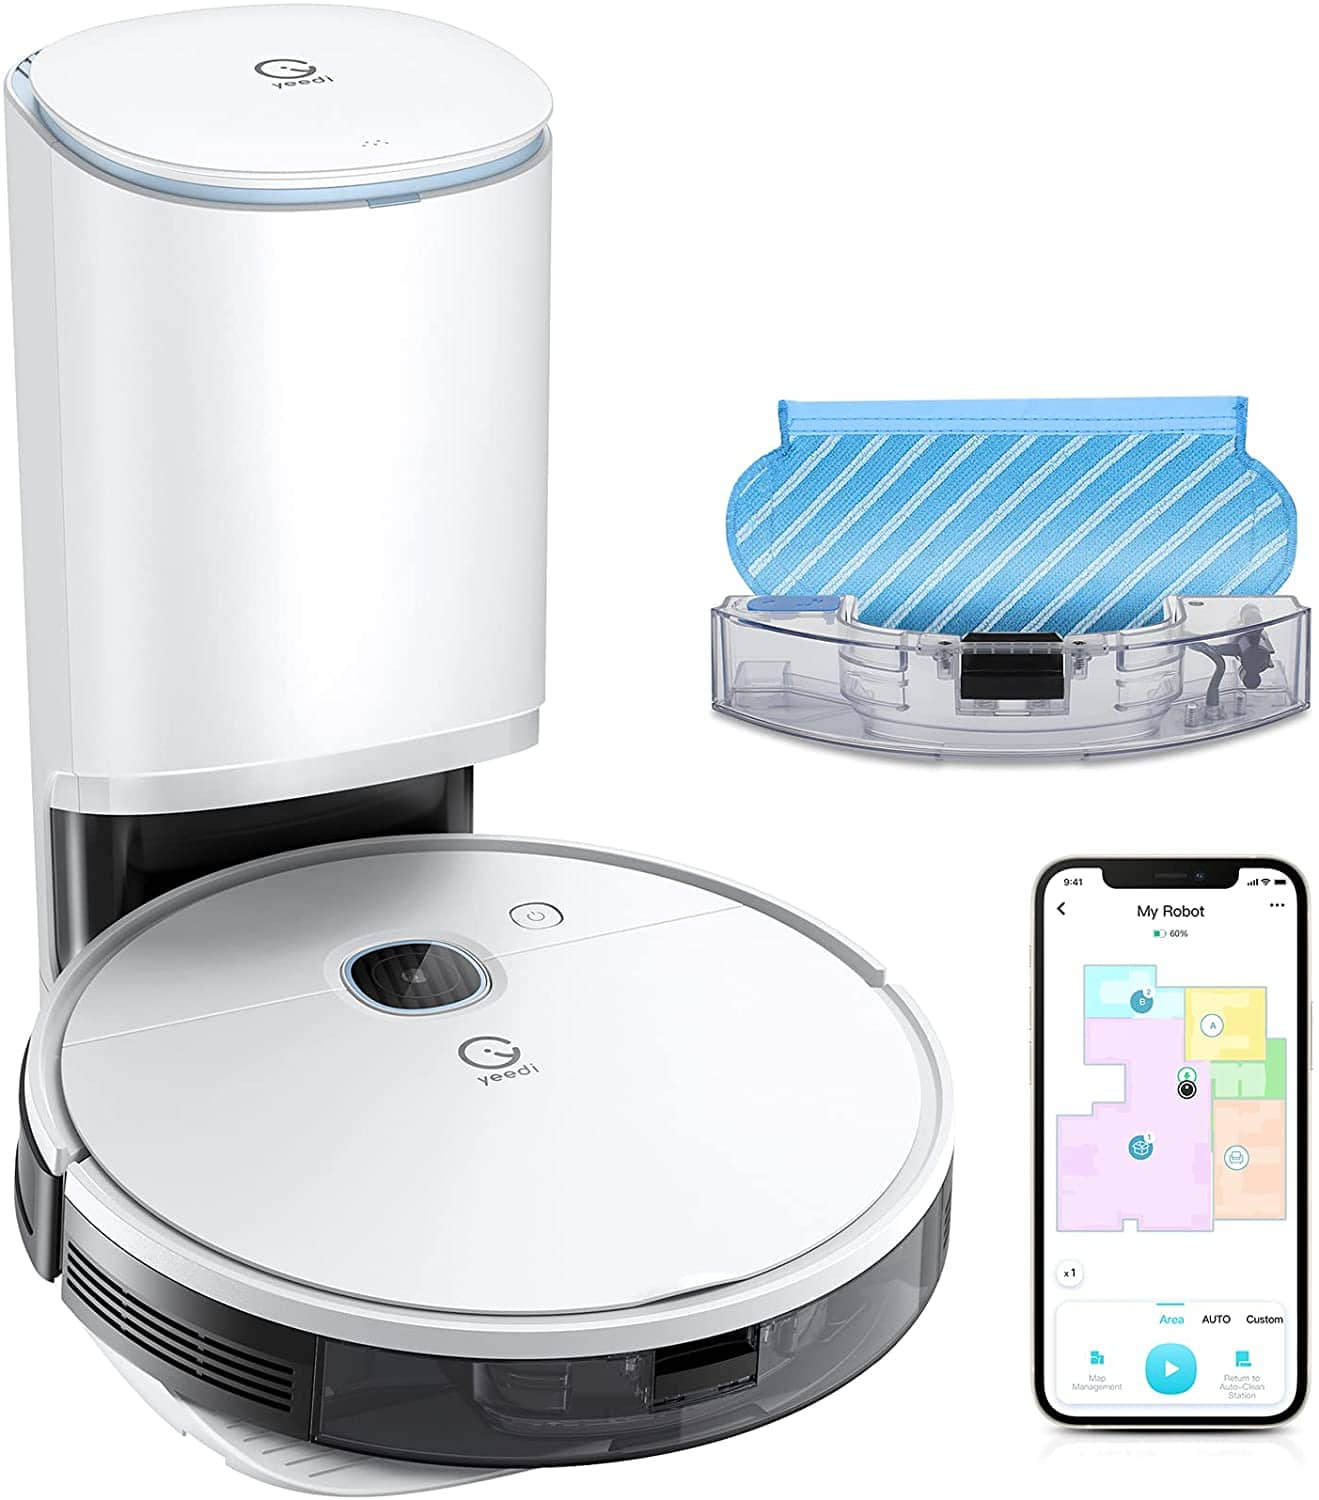 Yeedi Vac Station Robot Vacuum and Mop + Free Shipping for Prime Members $399